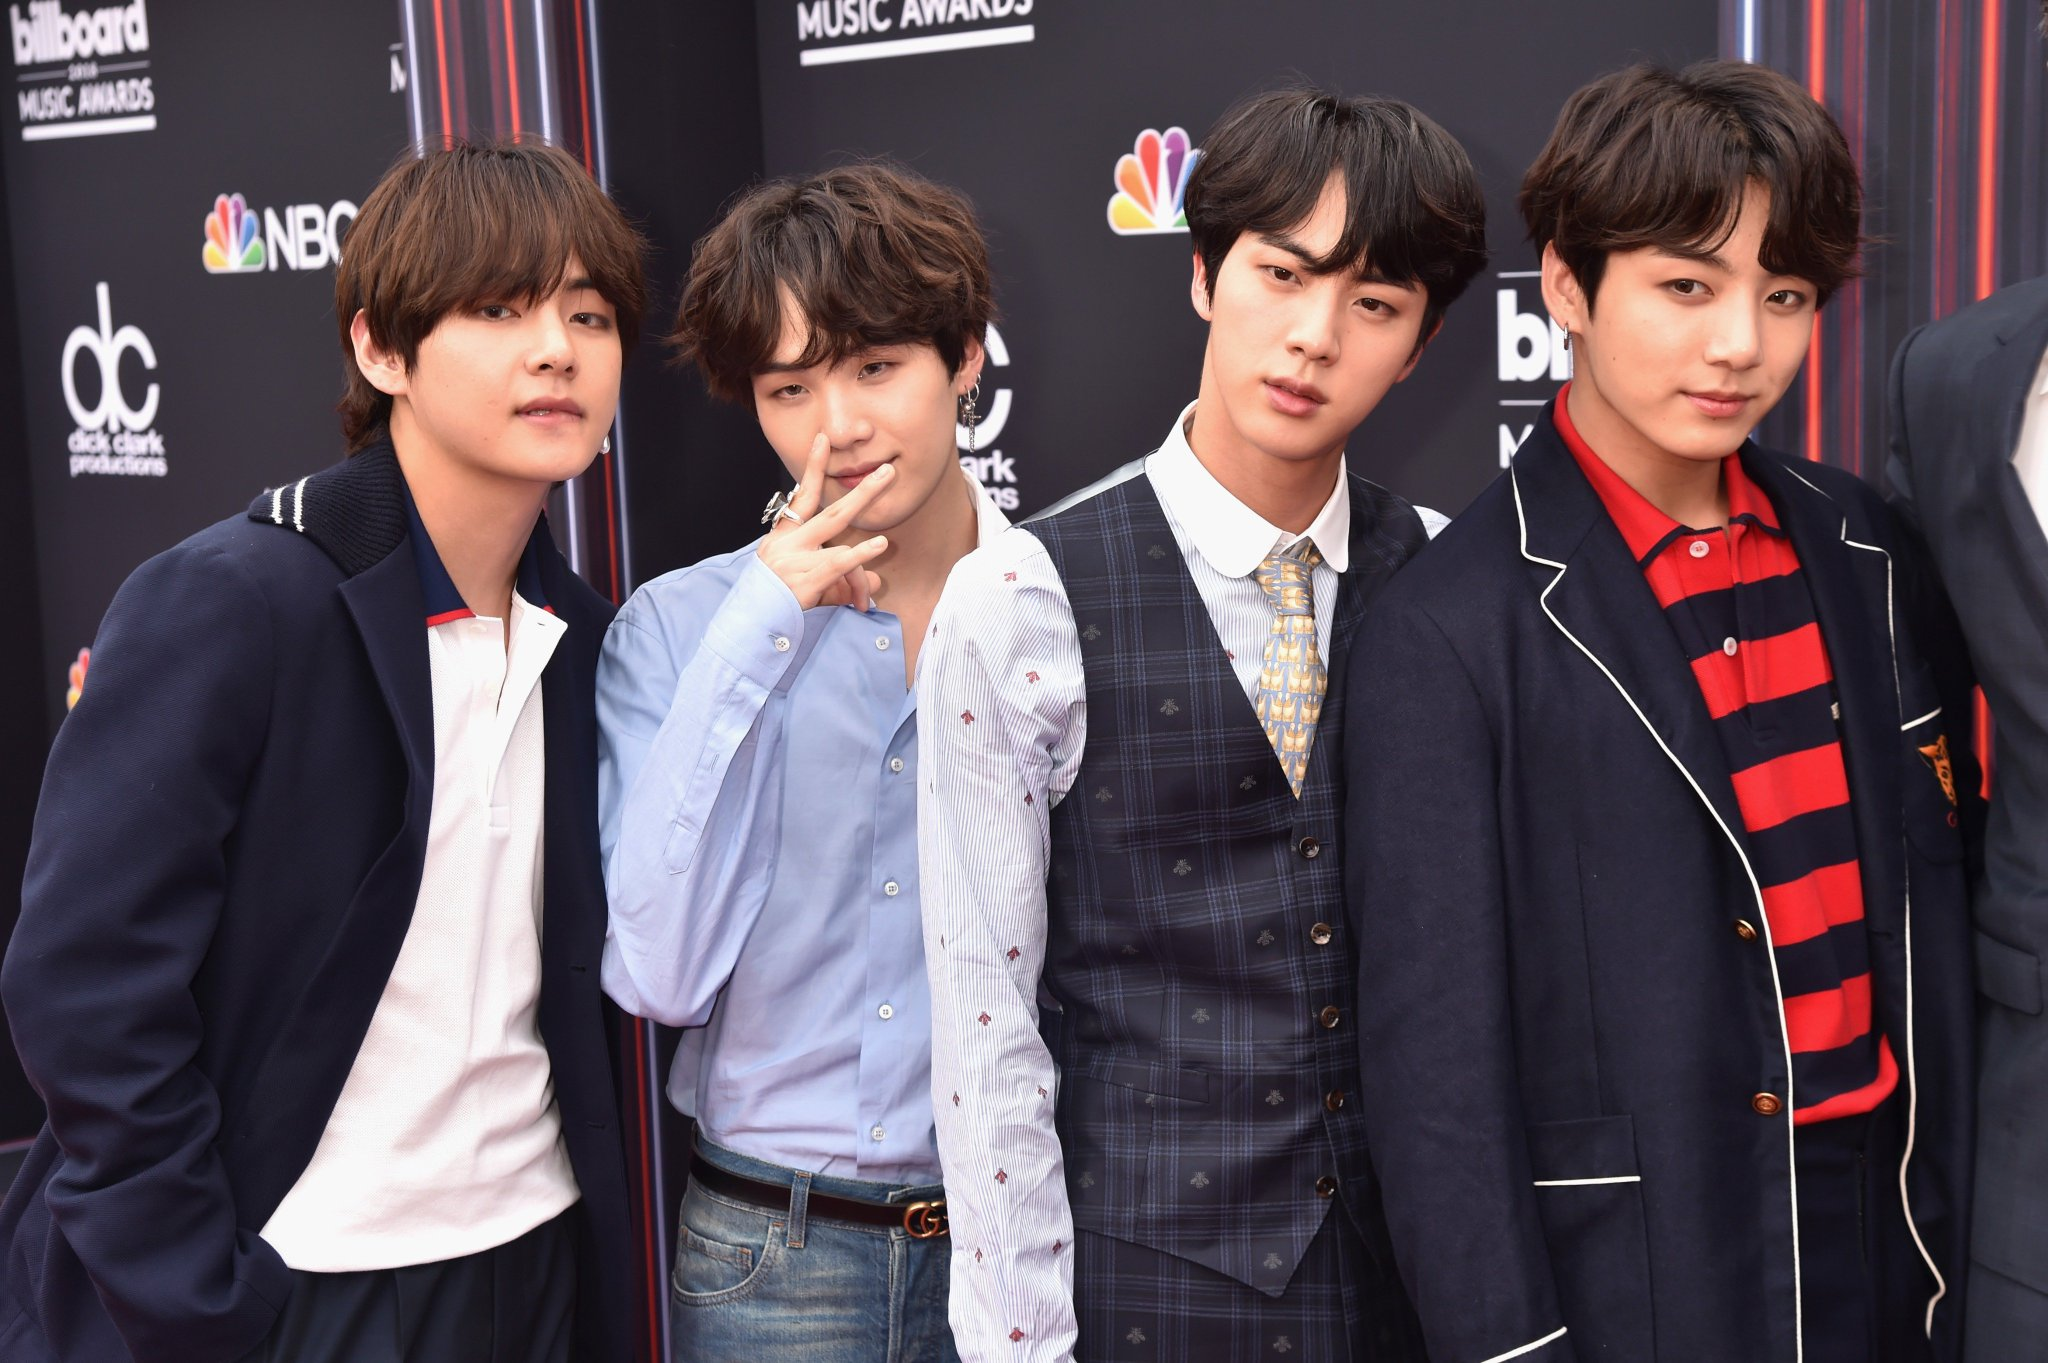 Check out these cuties! @bts_bighit #BBMAs https://t.co/wh85O9WtKW https://t.co/evhGIYBDxN